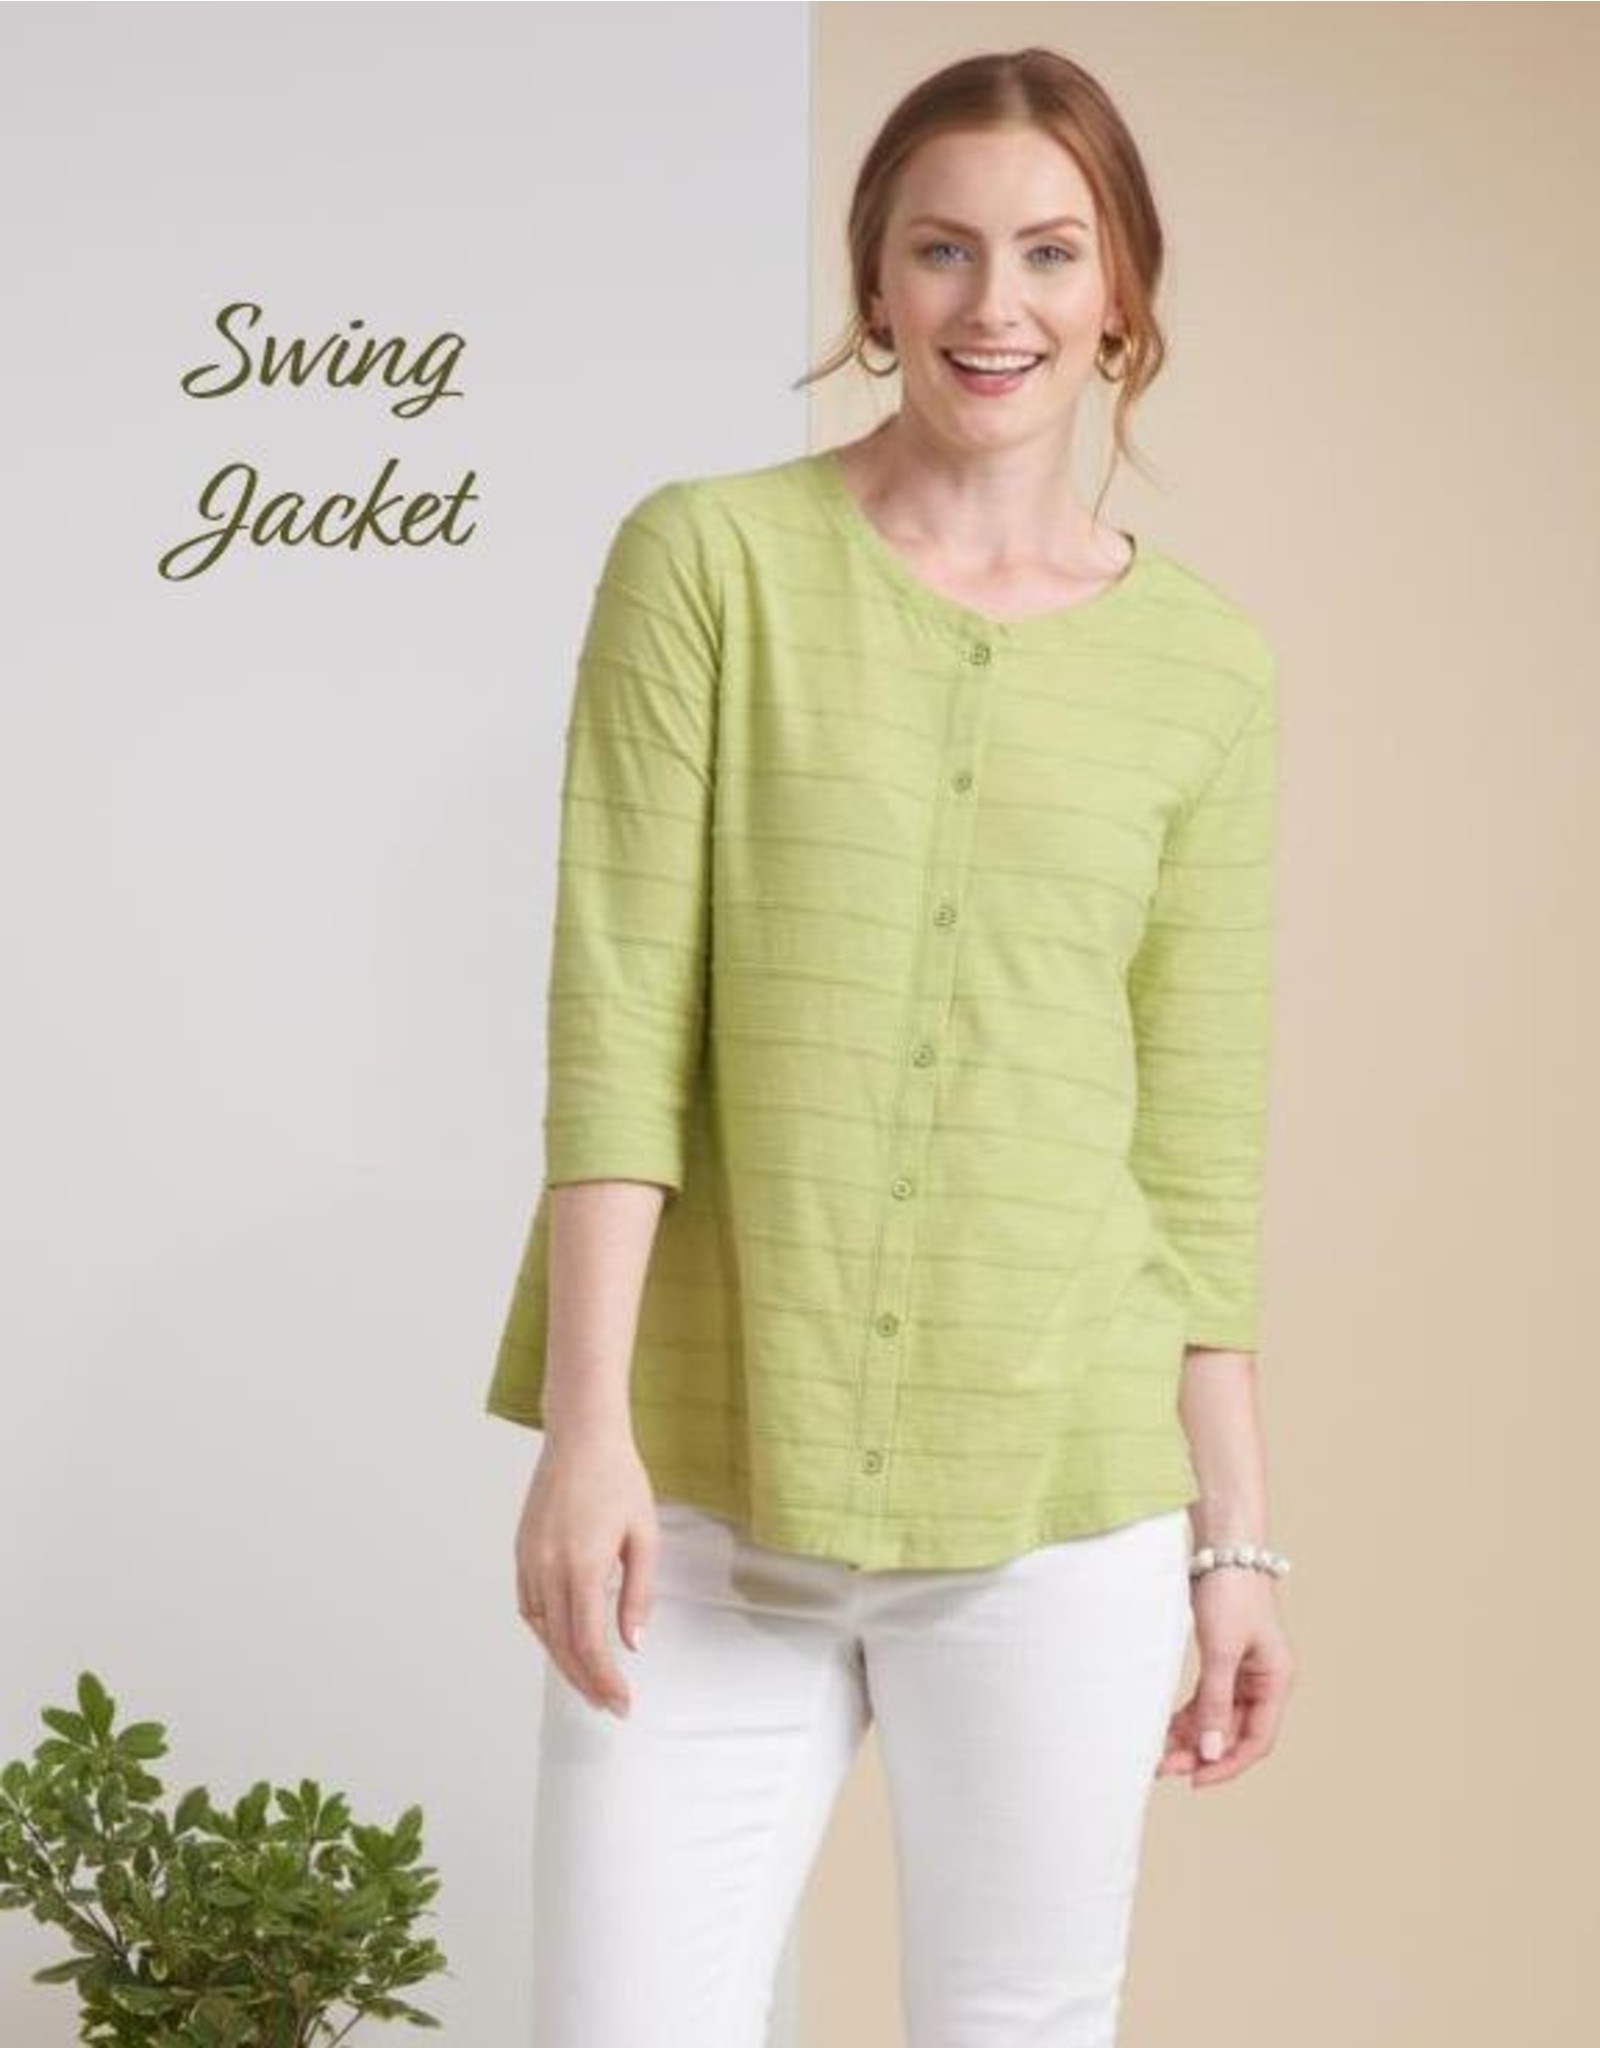 Habitat Swing Jacket